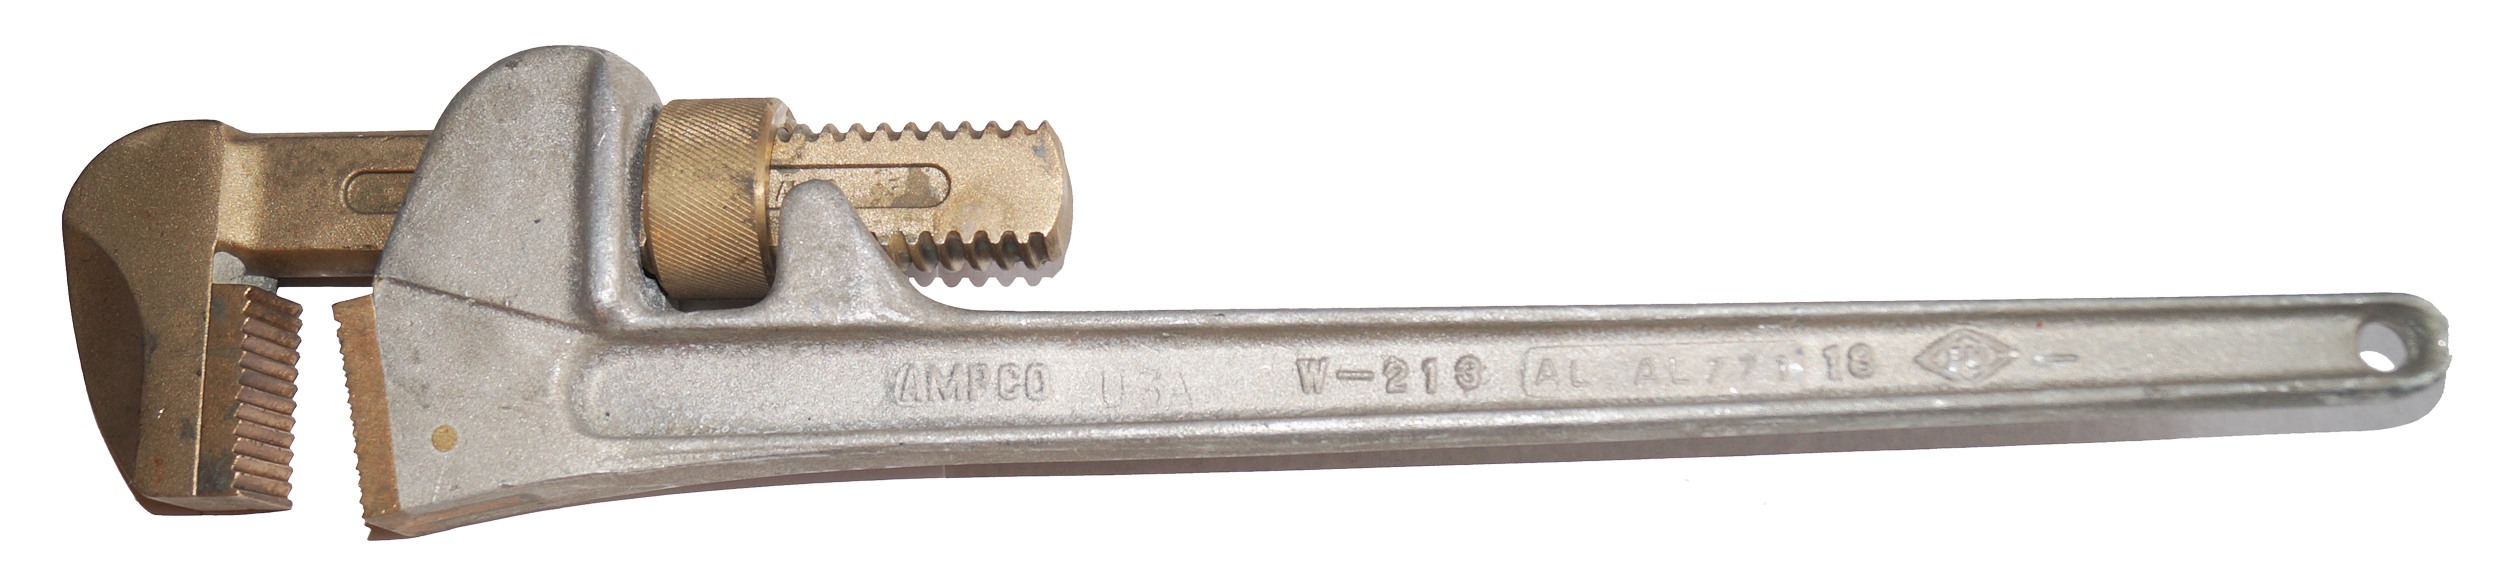 Ampco W-213 Pipe Wrench Aluminum 18 Inch